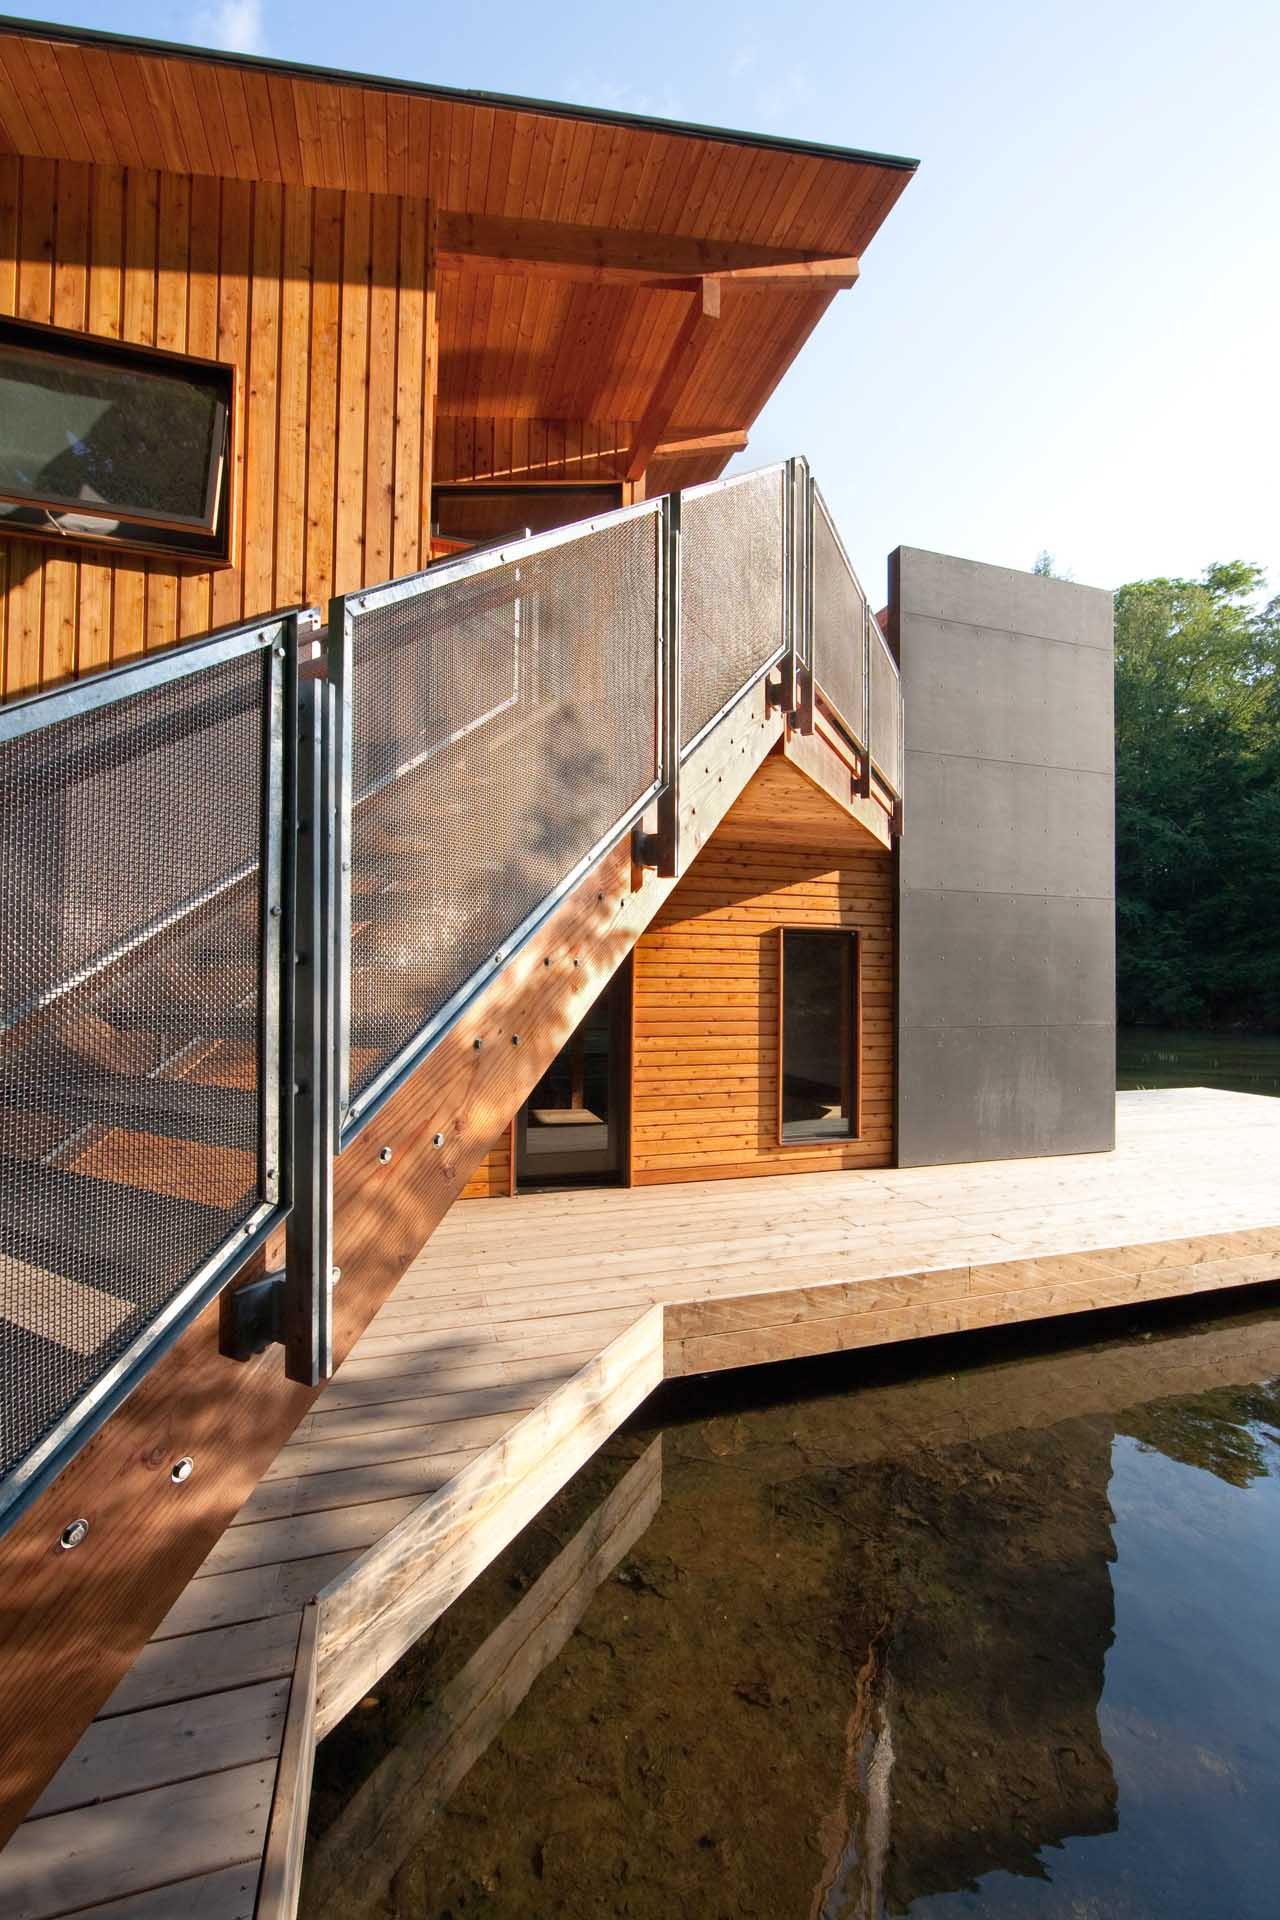 Stairs, Boathouse Renovation and Extension in Muskoka Lakes, Ontario